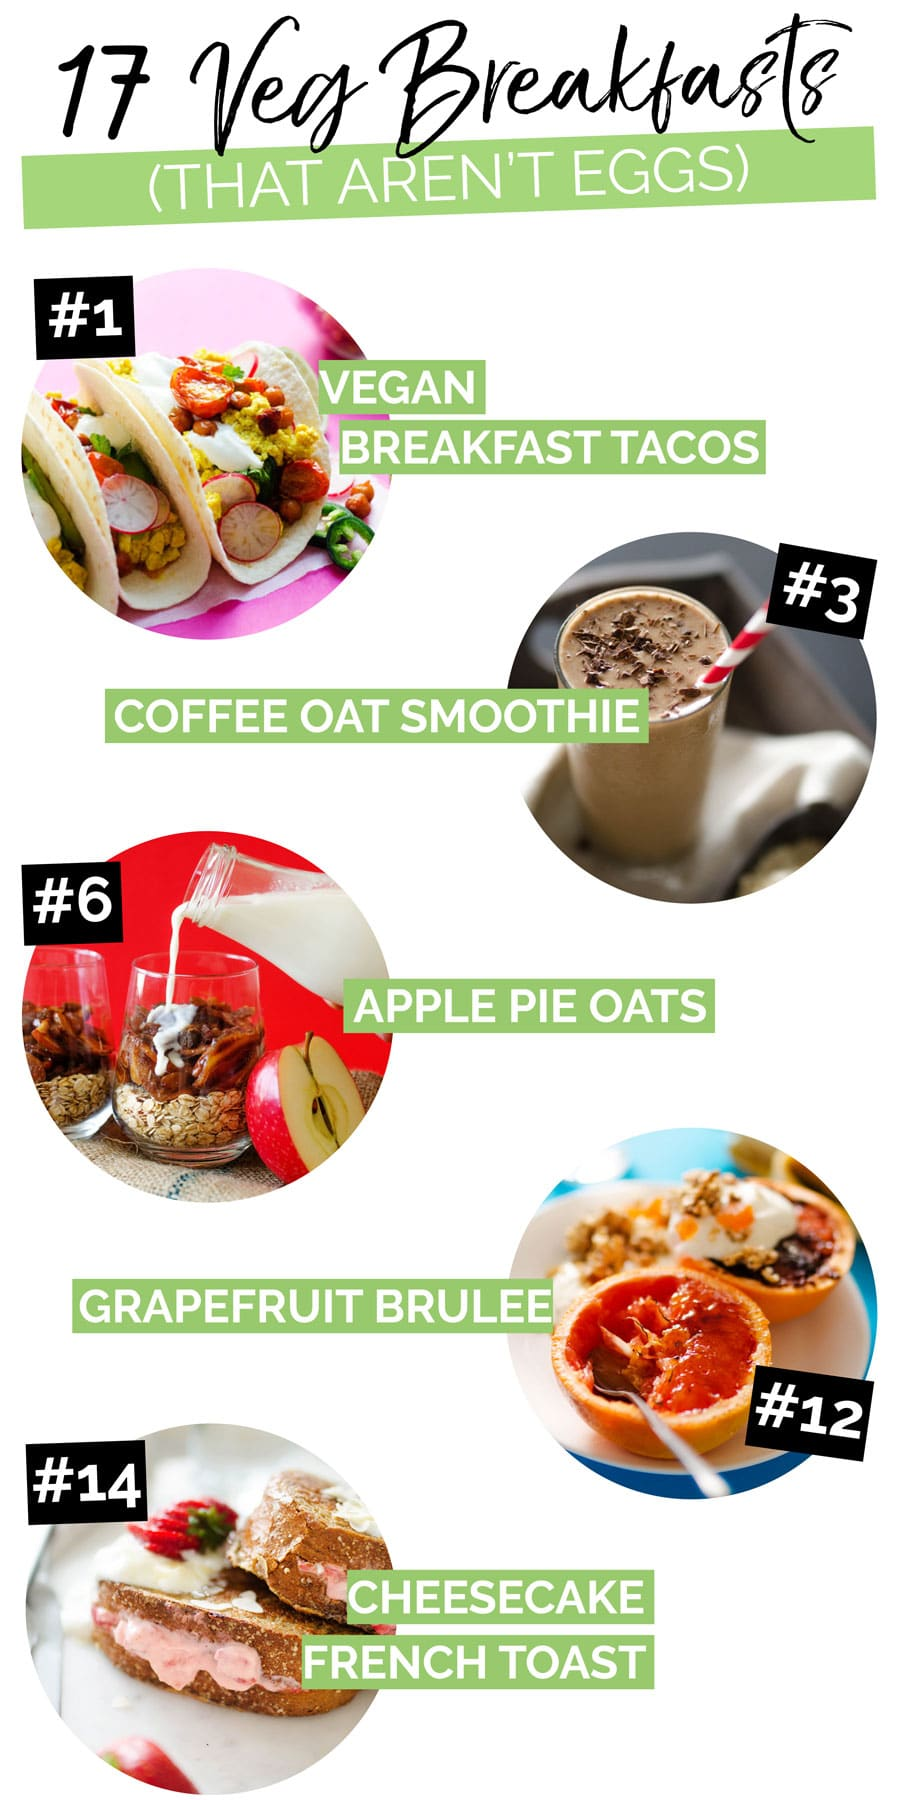 17 easy vegetarian breakfast ideas without eggs to inspire your mornings. From simple smoothies to 1 pan recipes, kickstart your day with these healthy, vegetarian egg-less breakfast recipes! #breakfast #breakfastrecipes #vegan #veganrecipes #vegetarian #vegetarianrecipes #easyrecipes #healthy recipes